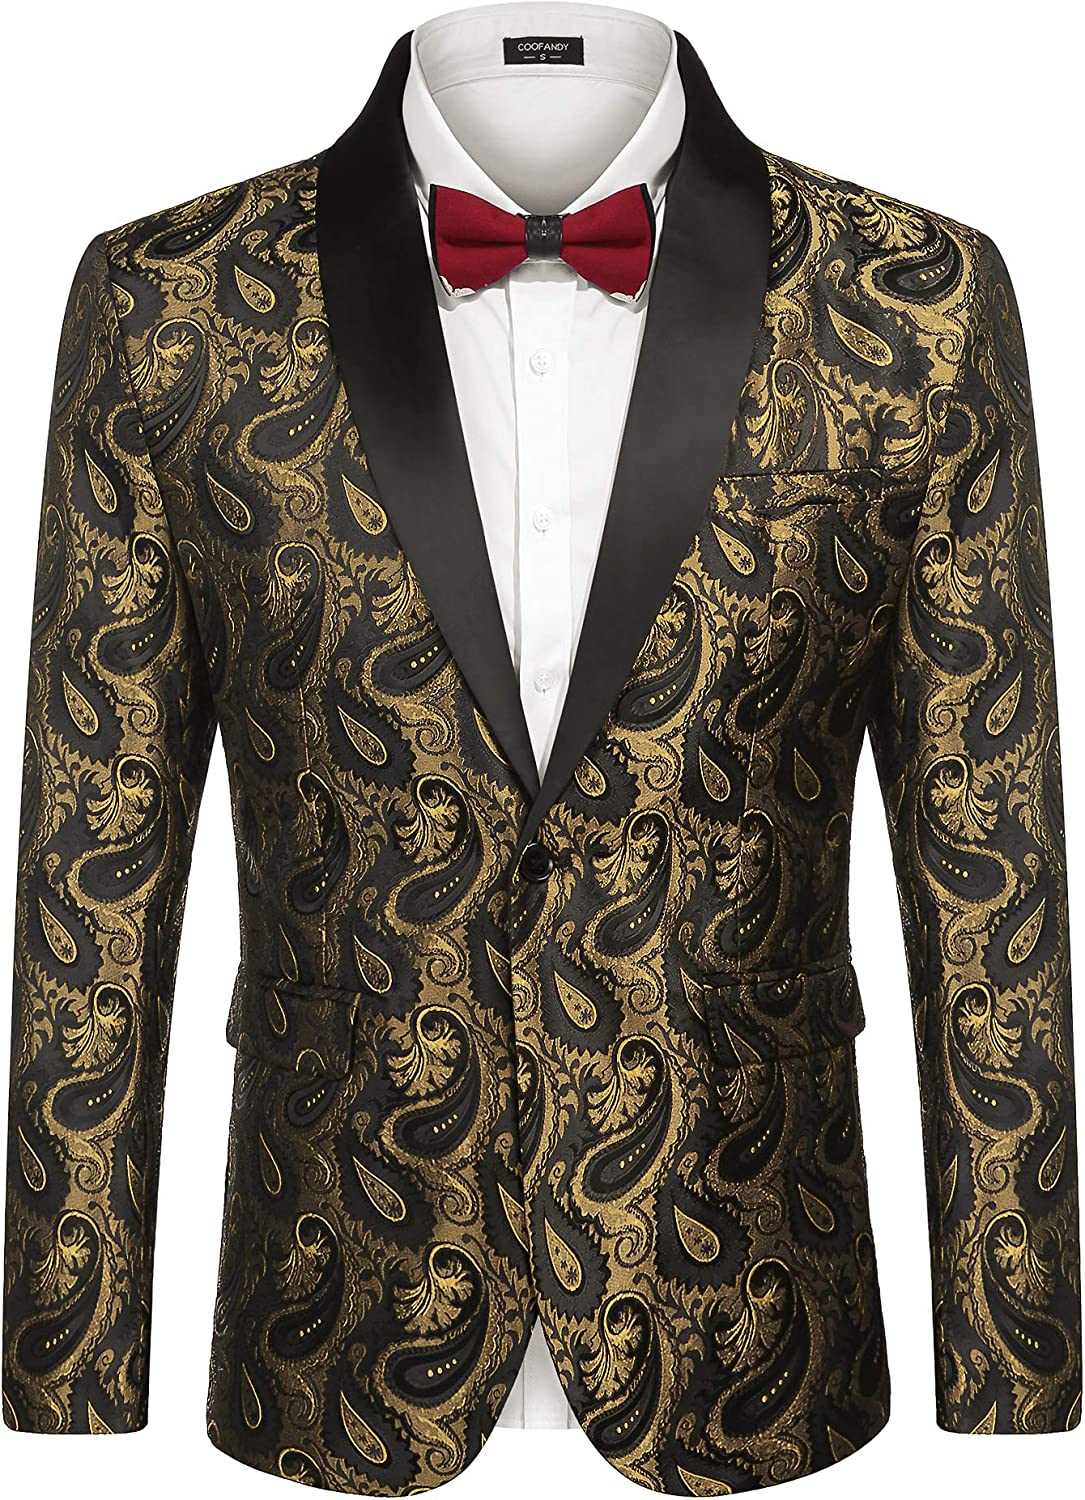 Coofandy Mens Blazer Casual Slim Fit Paisley Floral One Button Suit Blazer Prom Tuxedo Wedding Party Jackets